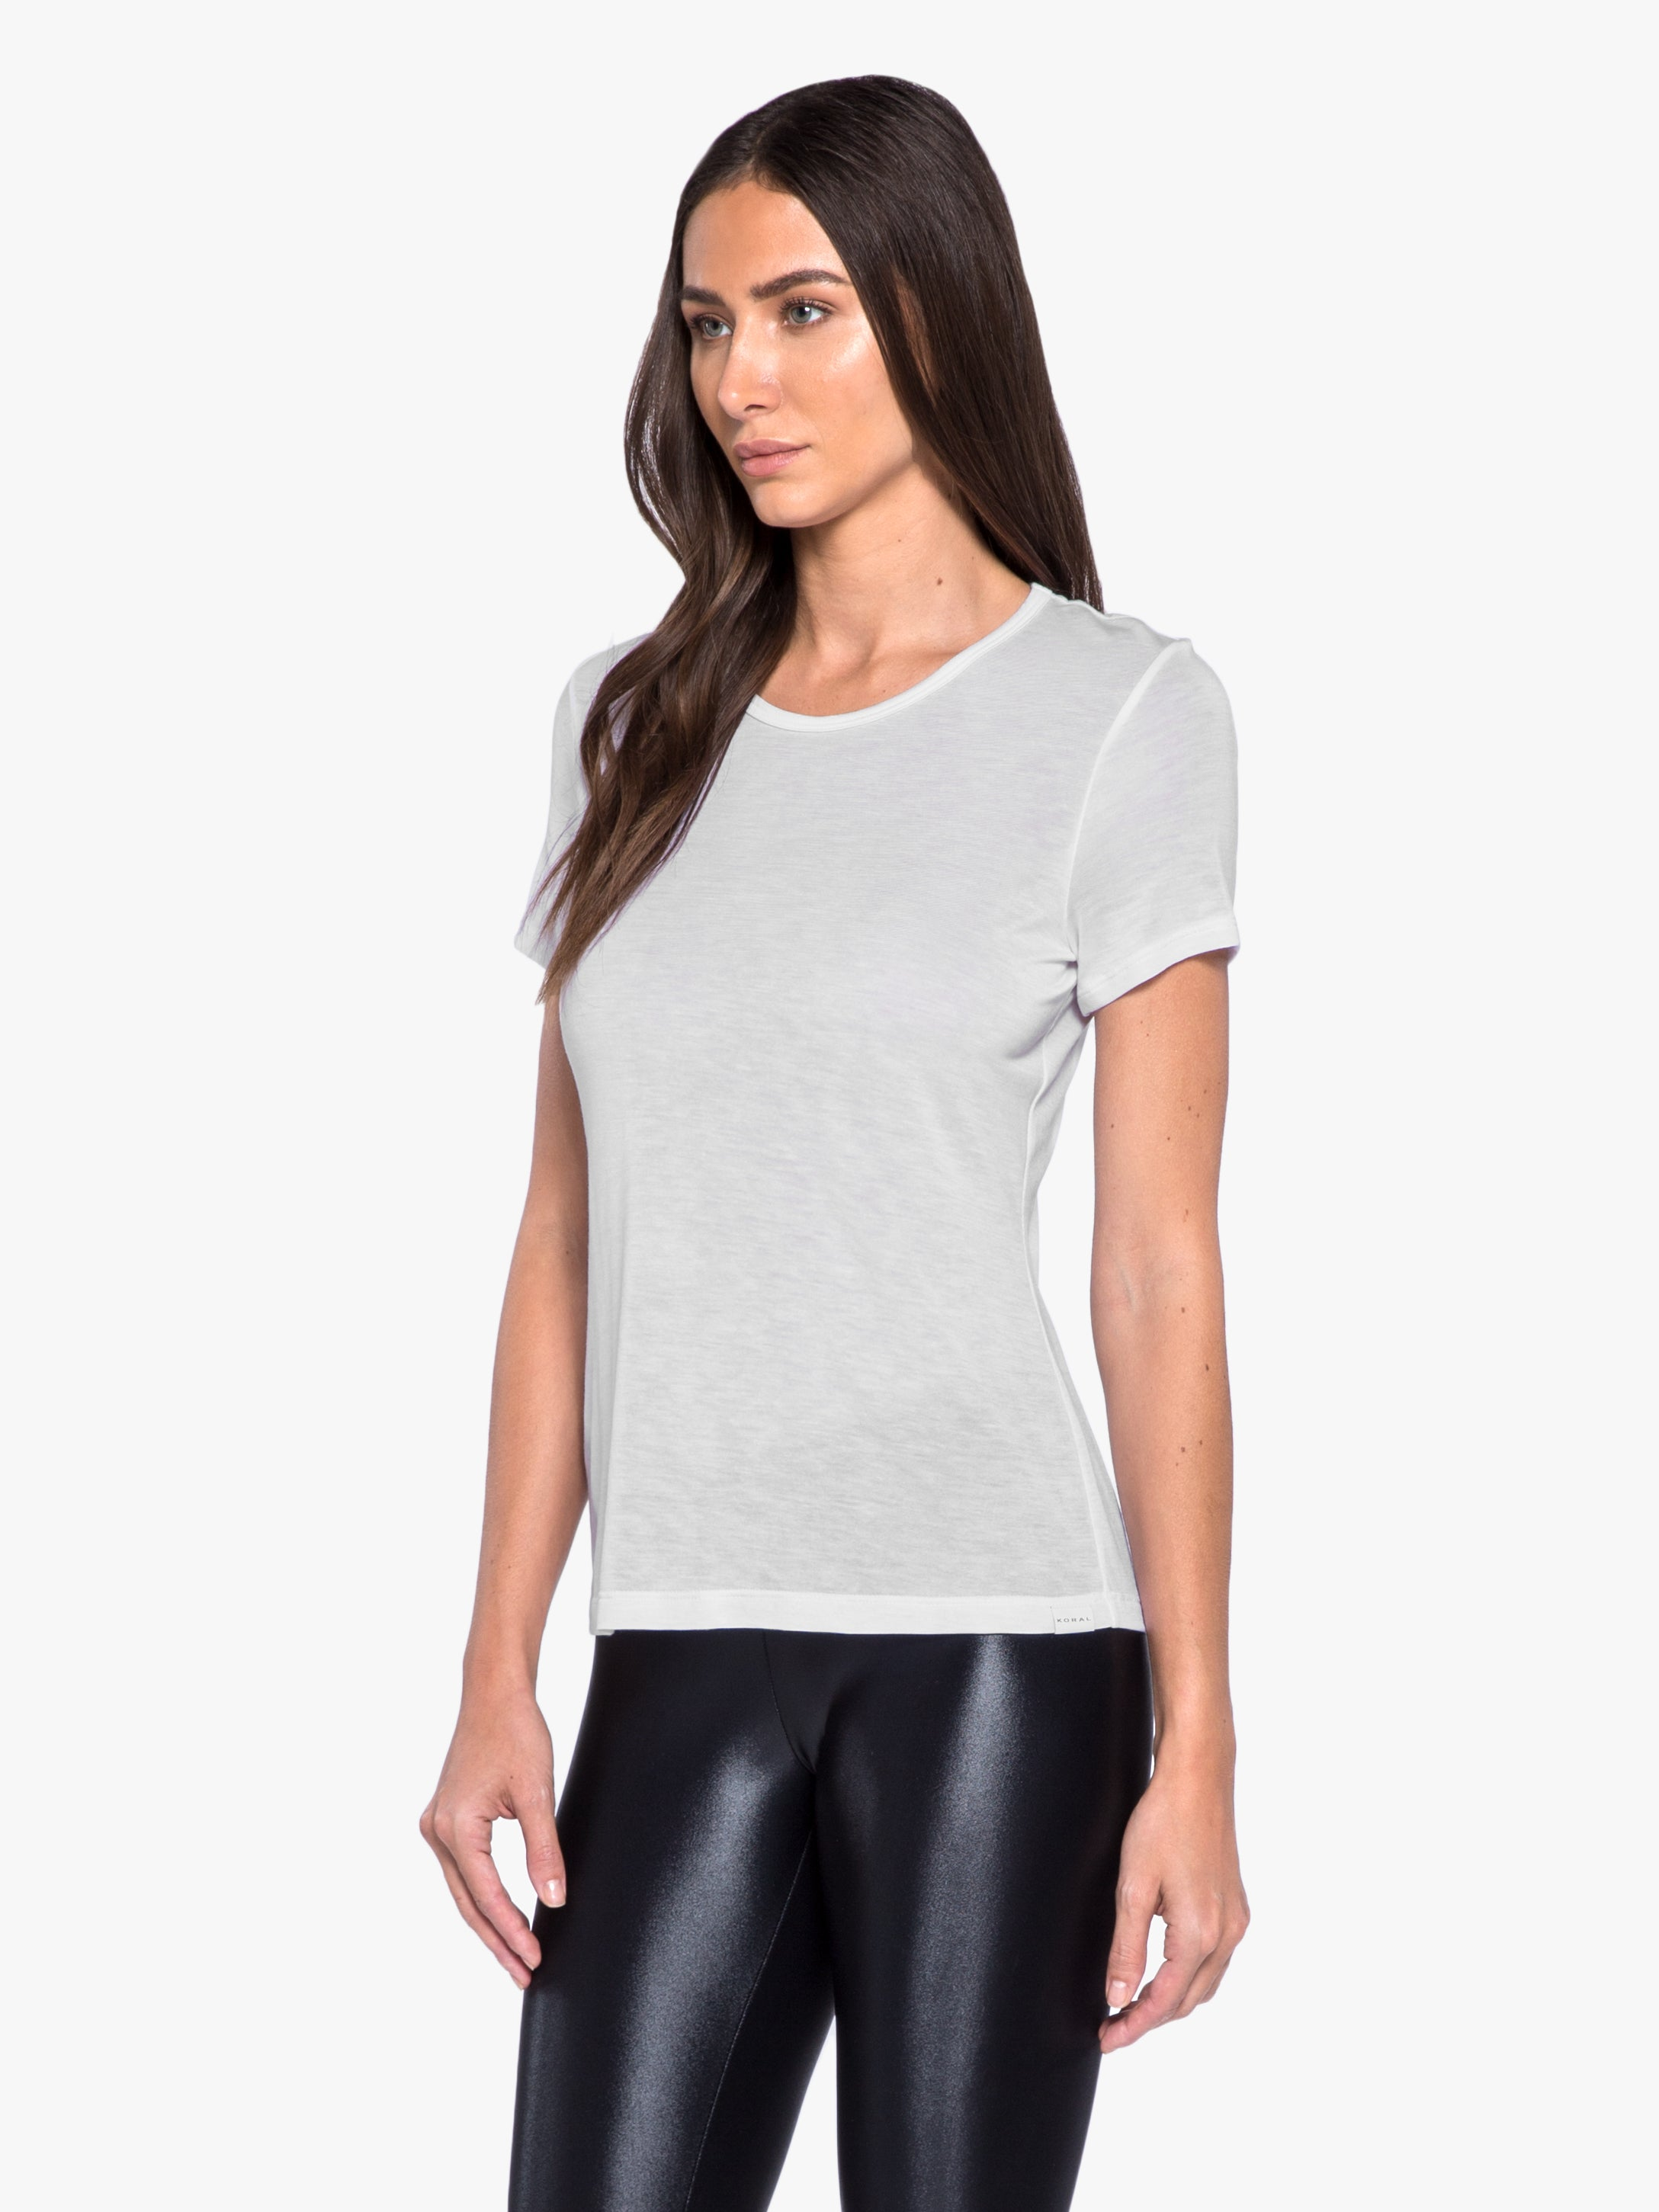 Isla Top - White/Black